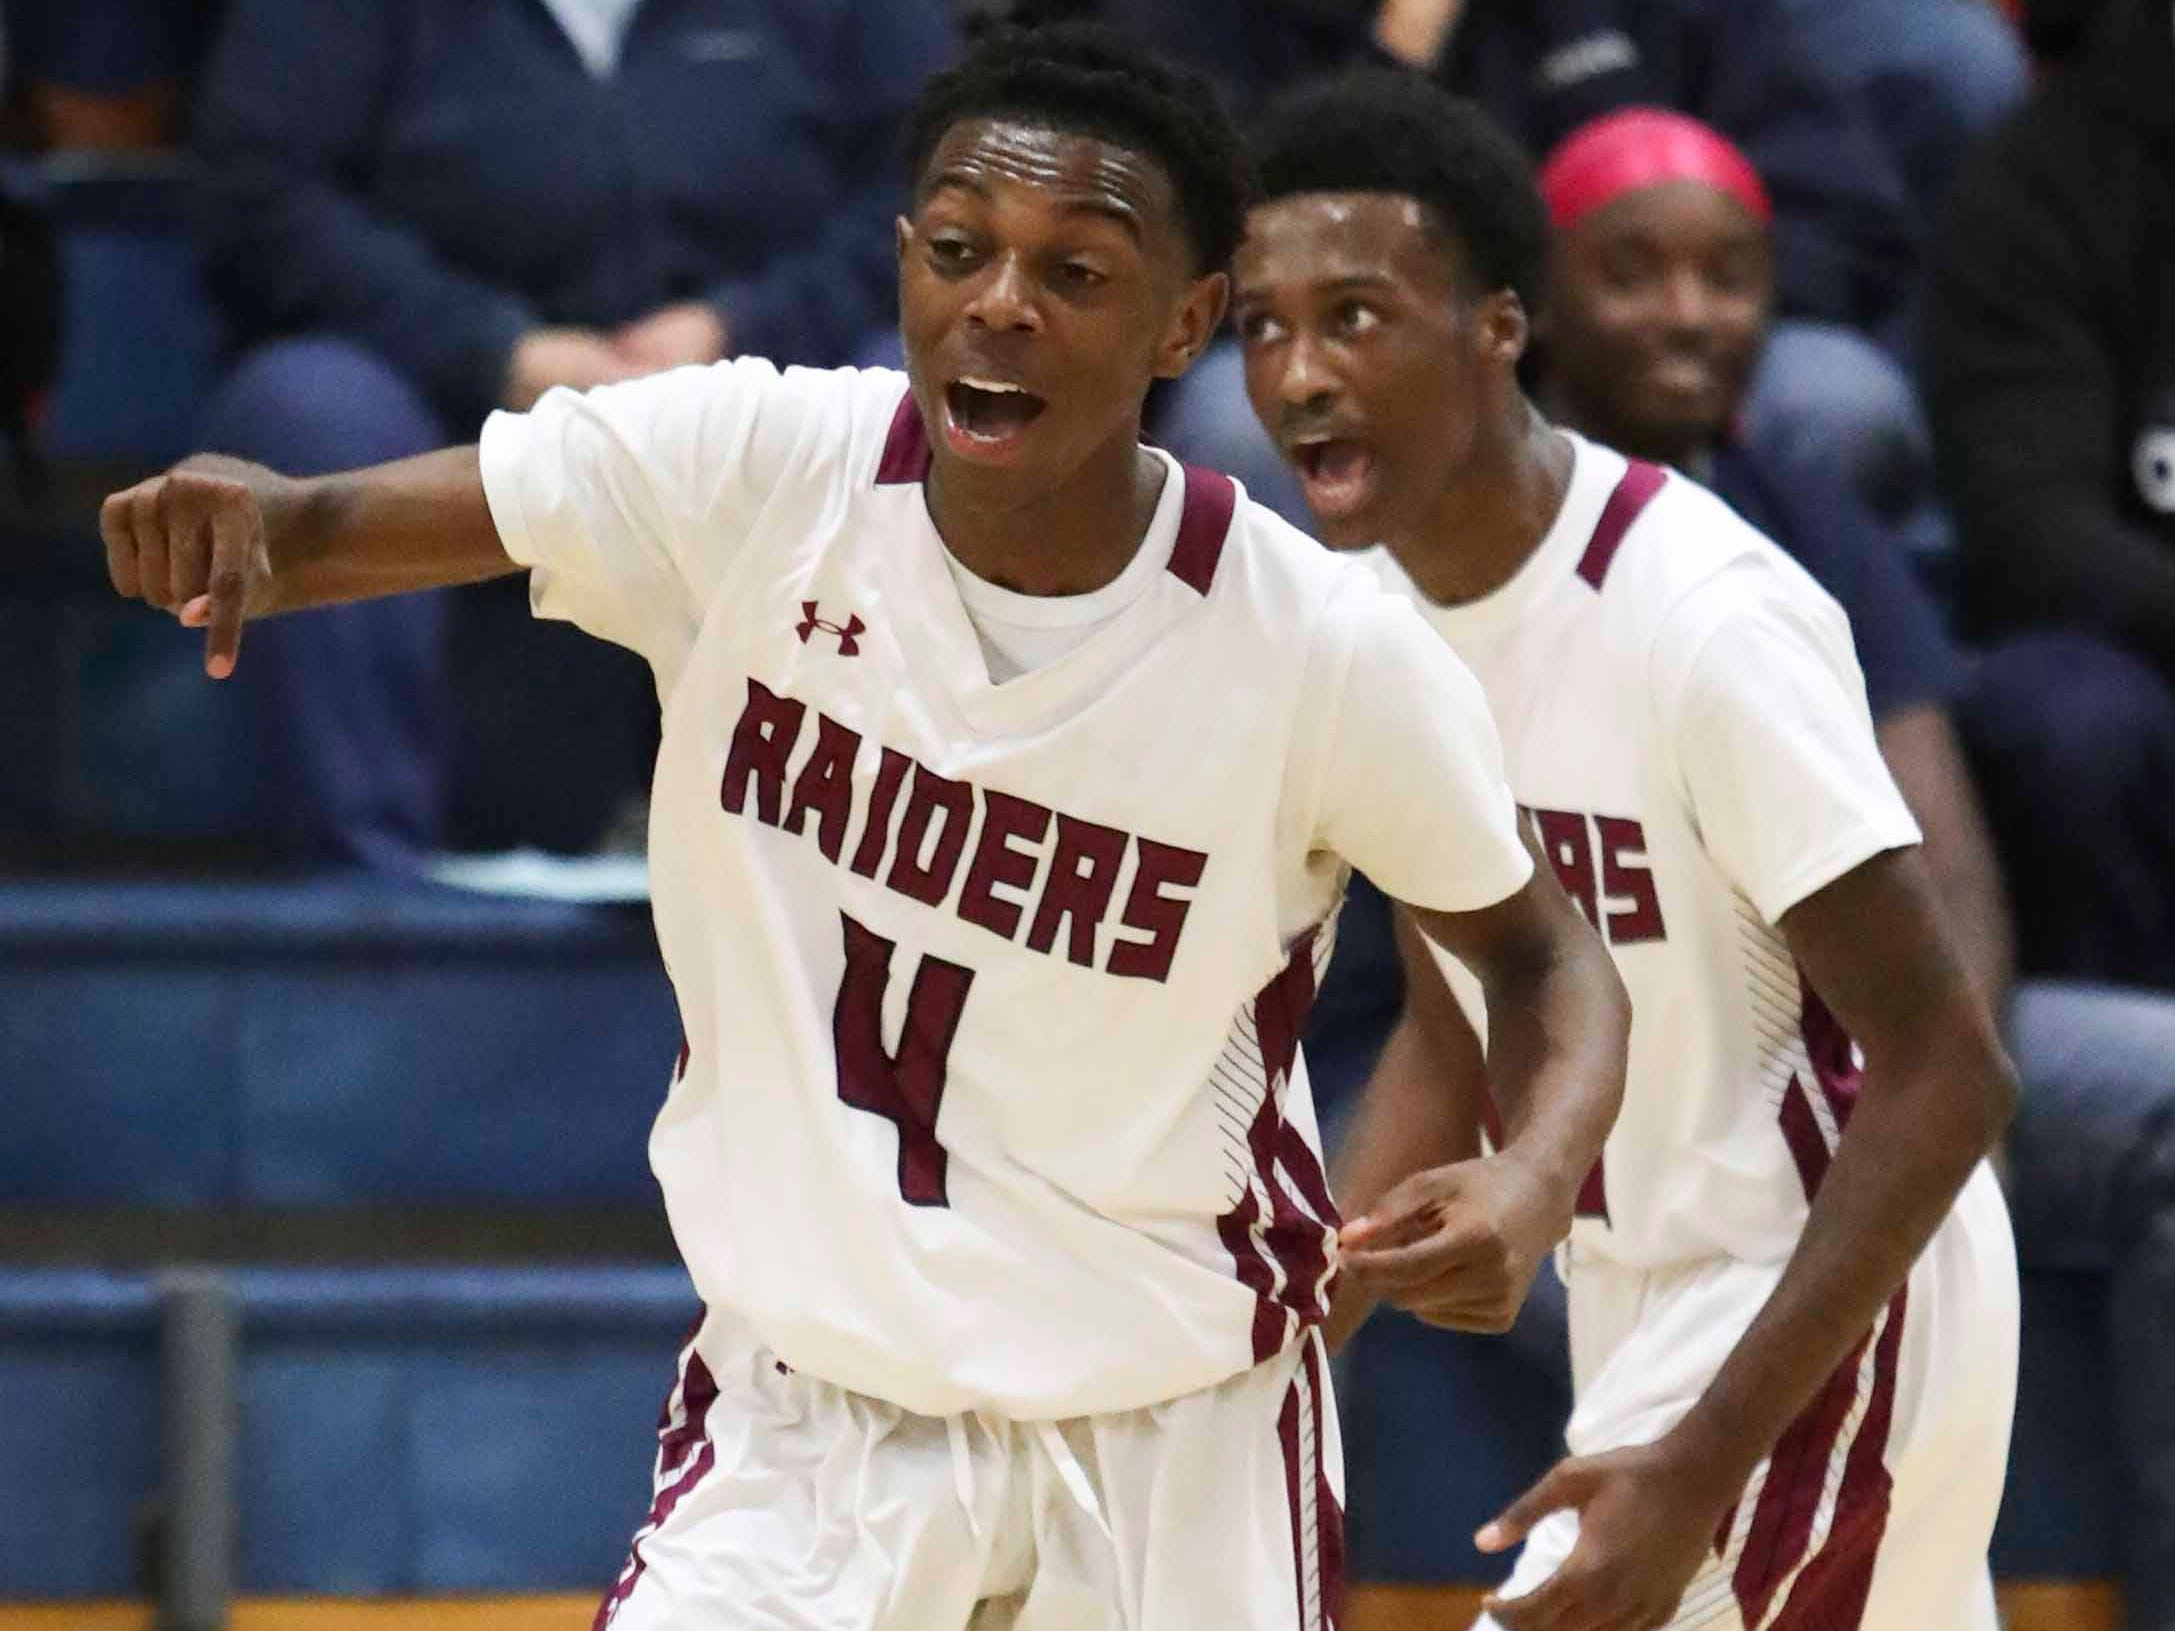 Jamere Crawford (4) and Quadaire Boyer cheer Crawford's buzzer-beater at the end of the first quarter of St. Elizabeth's 61-54 win Friday in the A.I. du Pont Tip-Off Tournament.